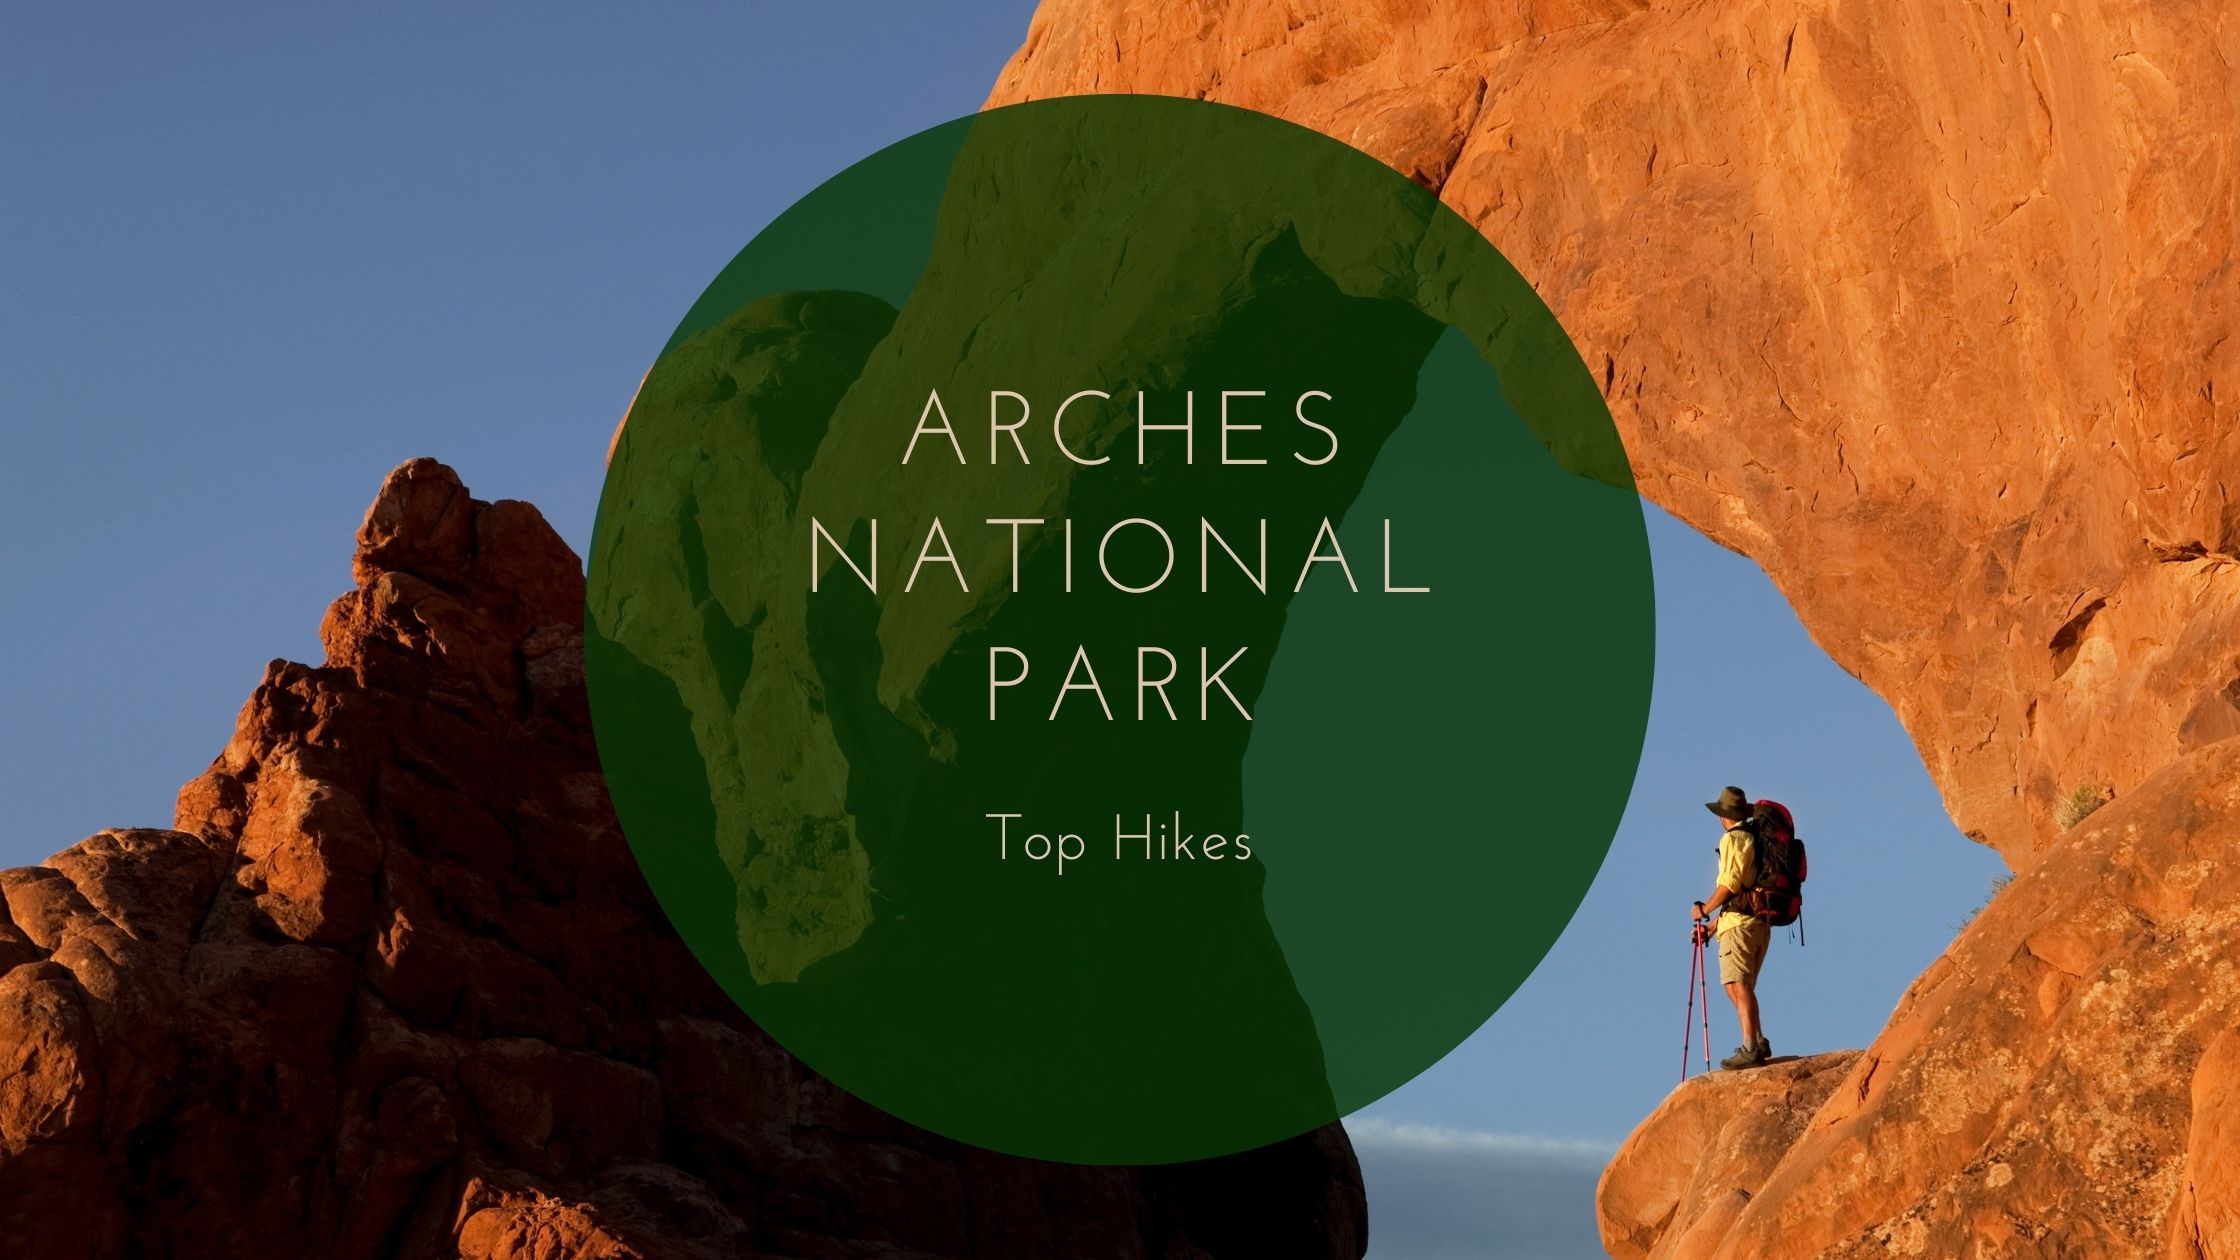 Top Hikes in Arches National Park